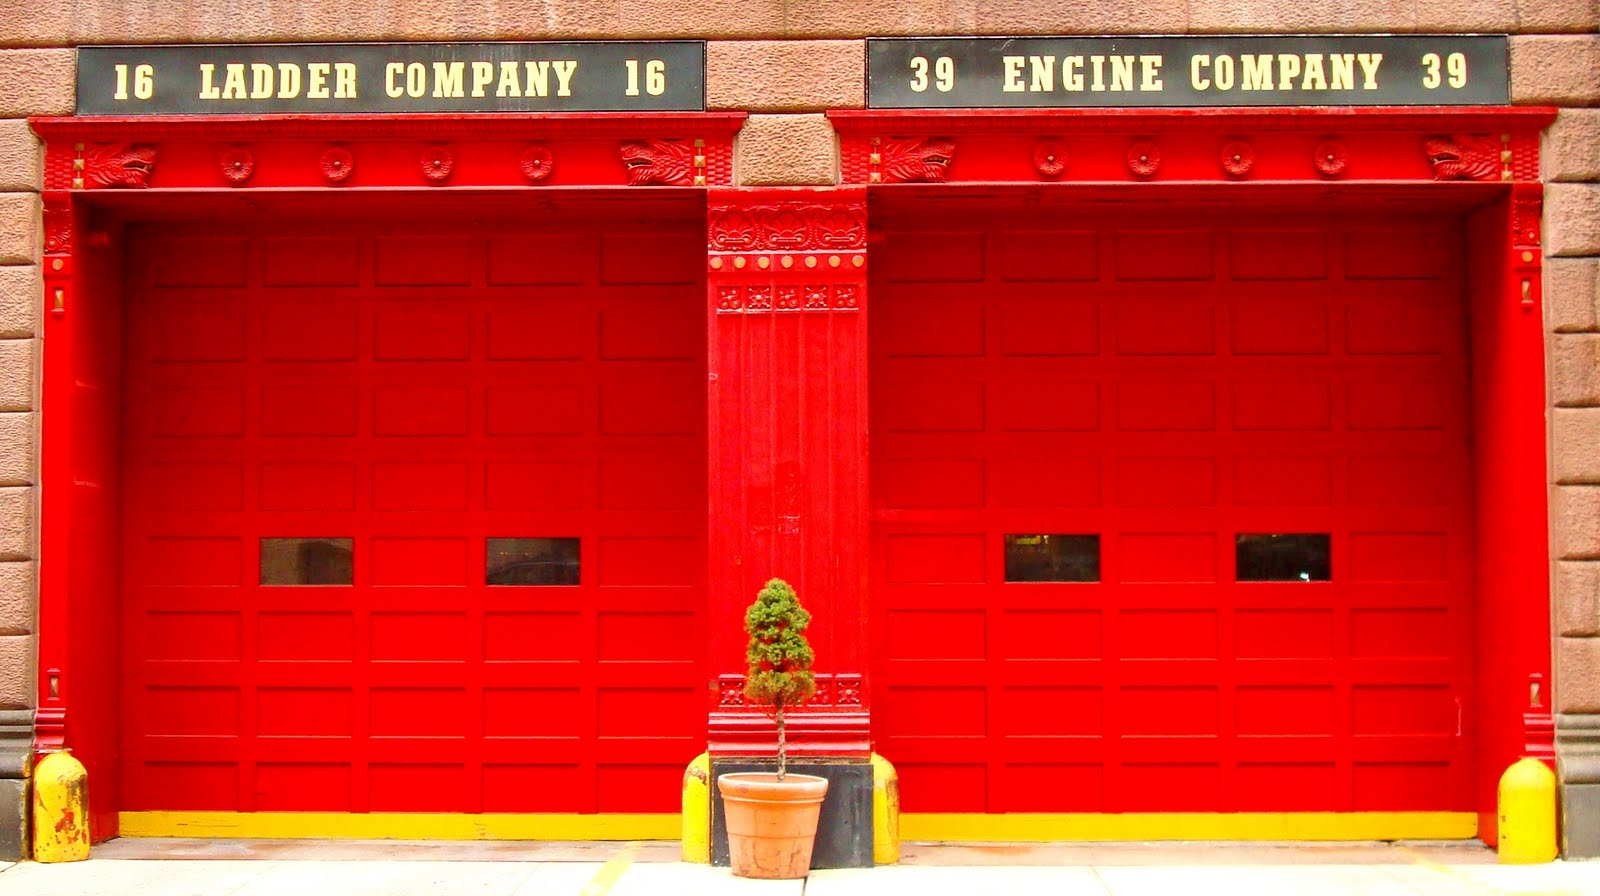 David cobb craig red doors of the upper east side in the early 1920s all of them painted black to make them as inexpensive as possible fire departments started painting their vehicles red to stand out biocorpaavc Images